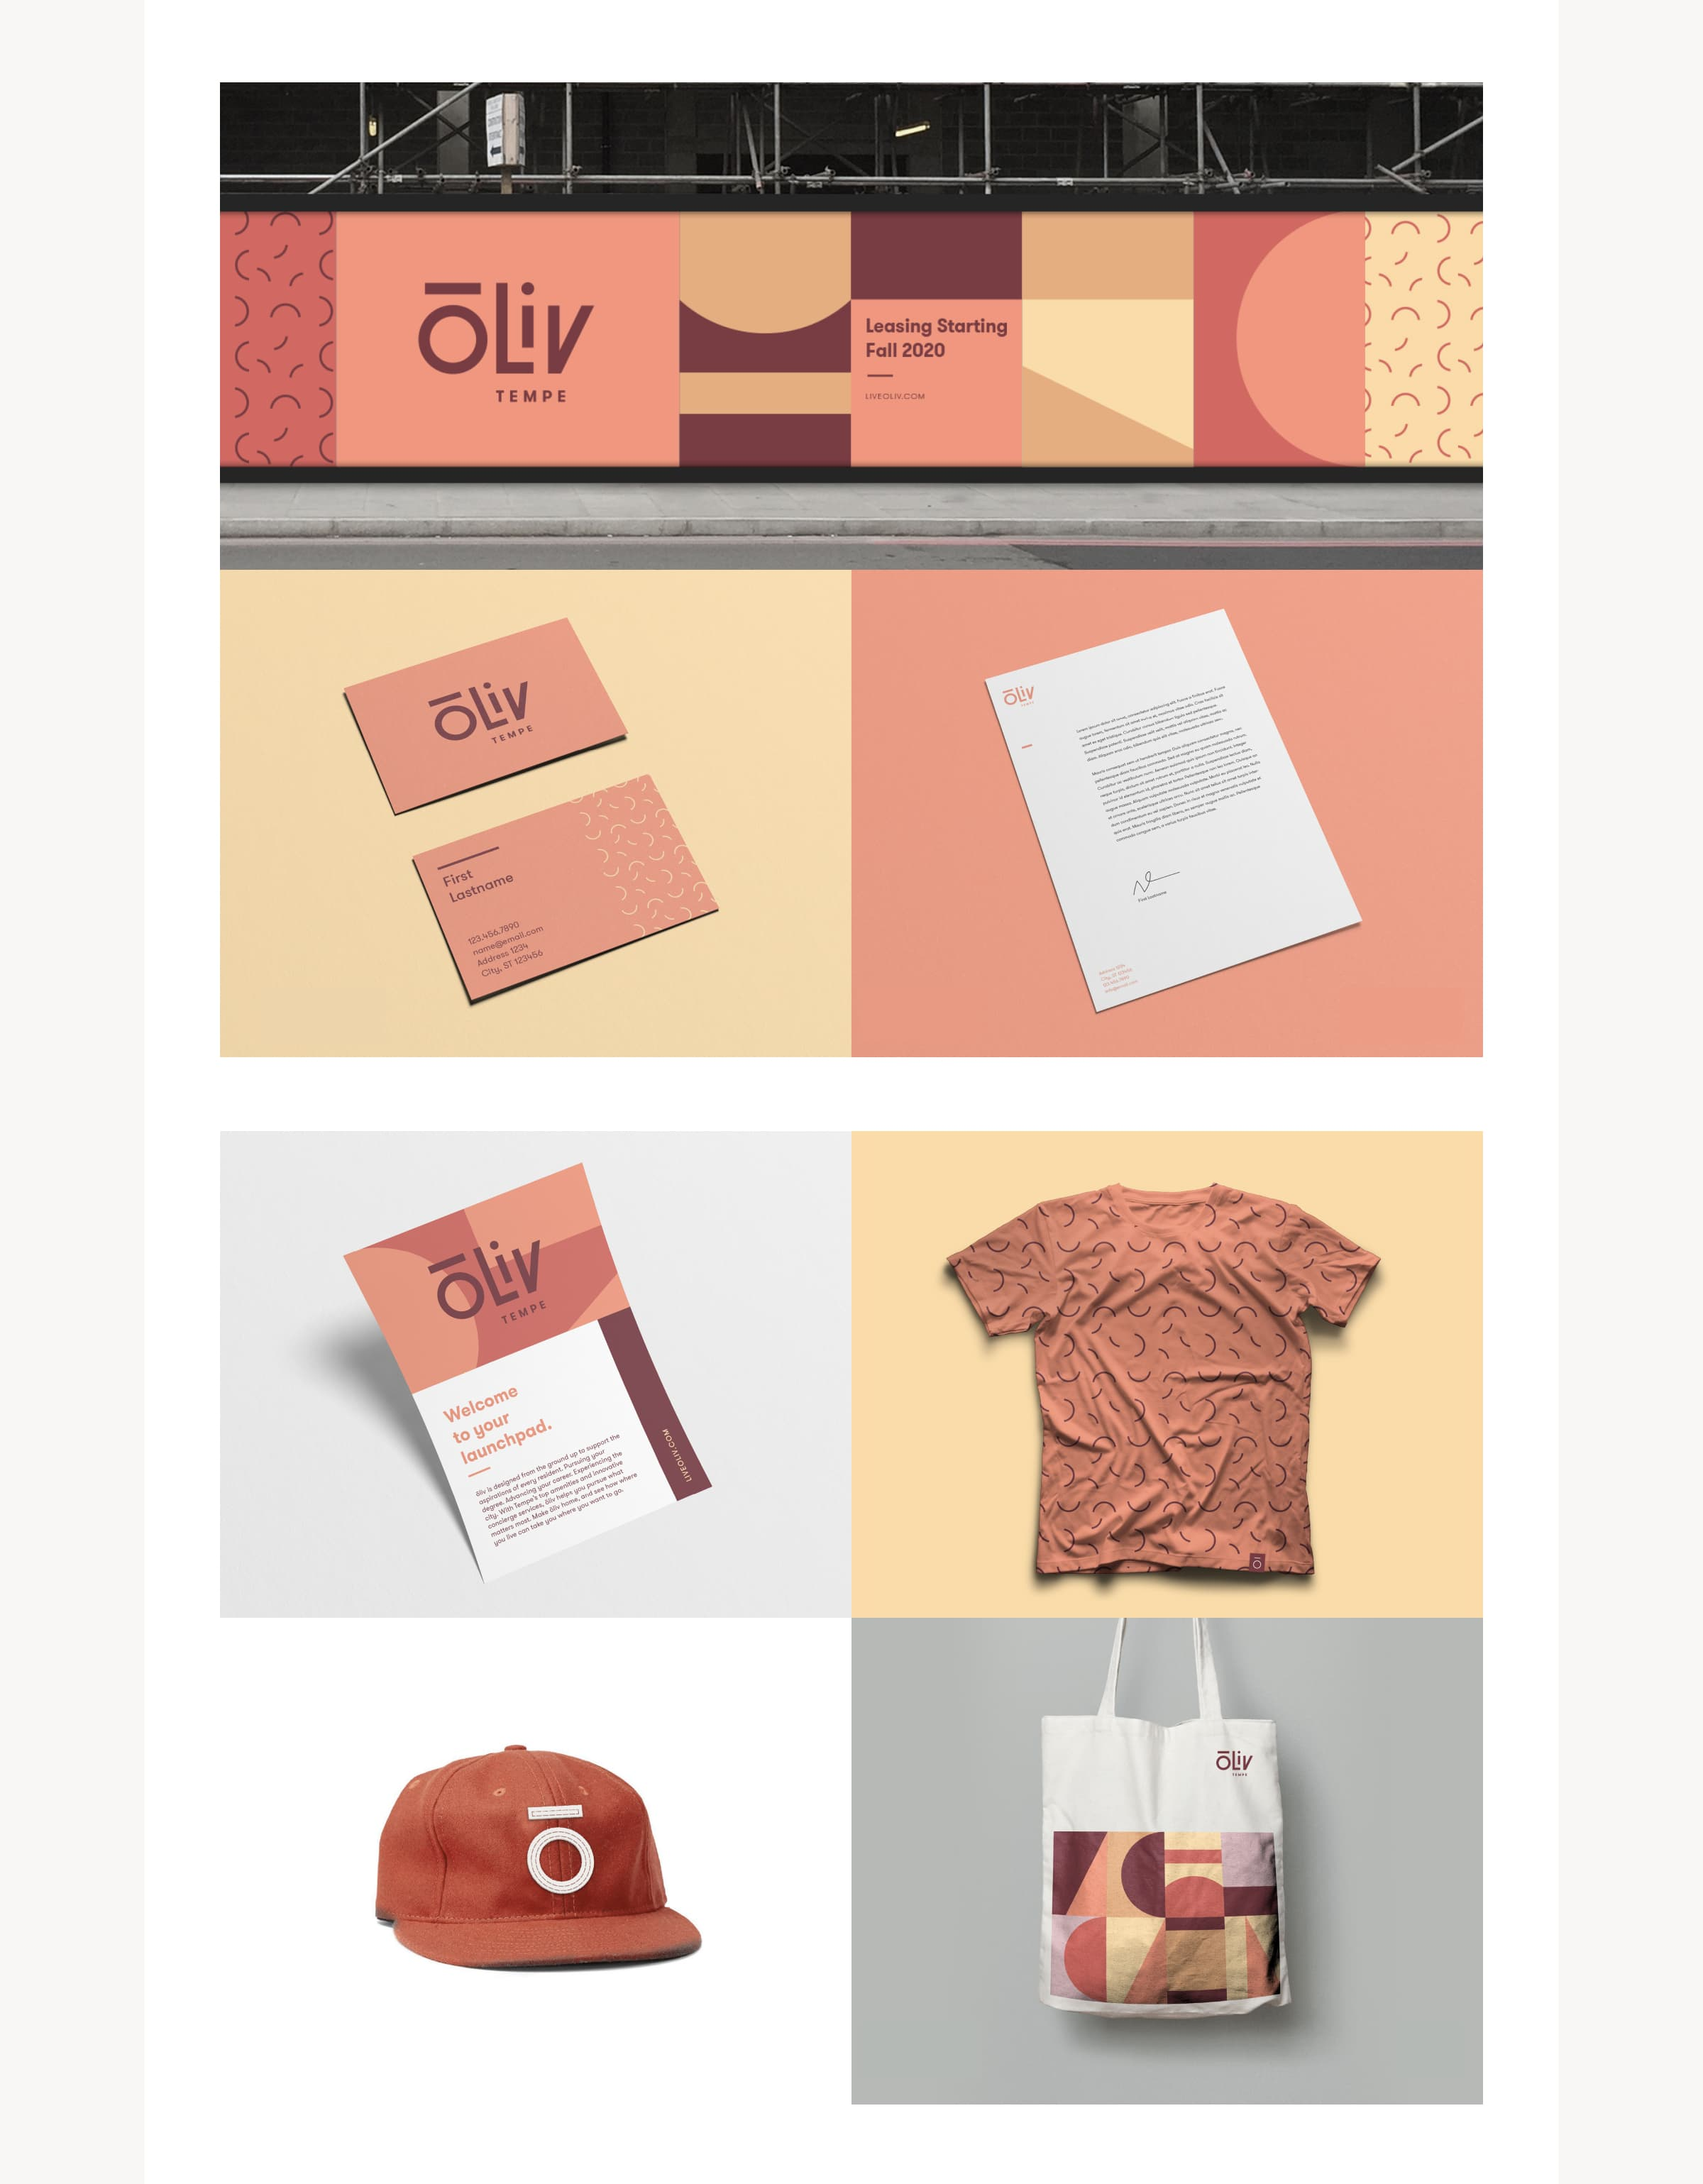 An image showing ōLiv marketing collateral for the Tempe, Arizona property, including: Building wrap signage, business card, letterhead, postcard, t-shirt, baseball hat, and tote bag.